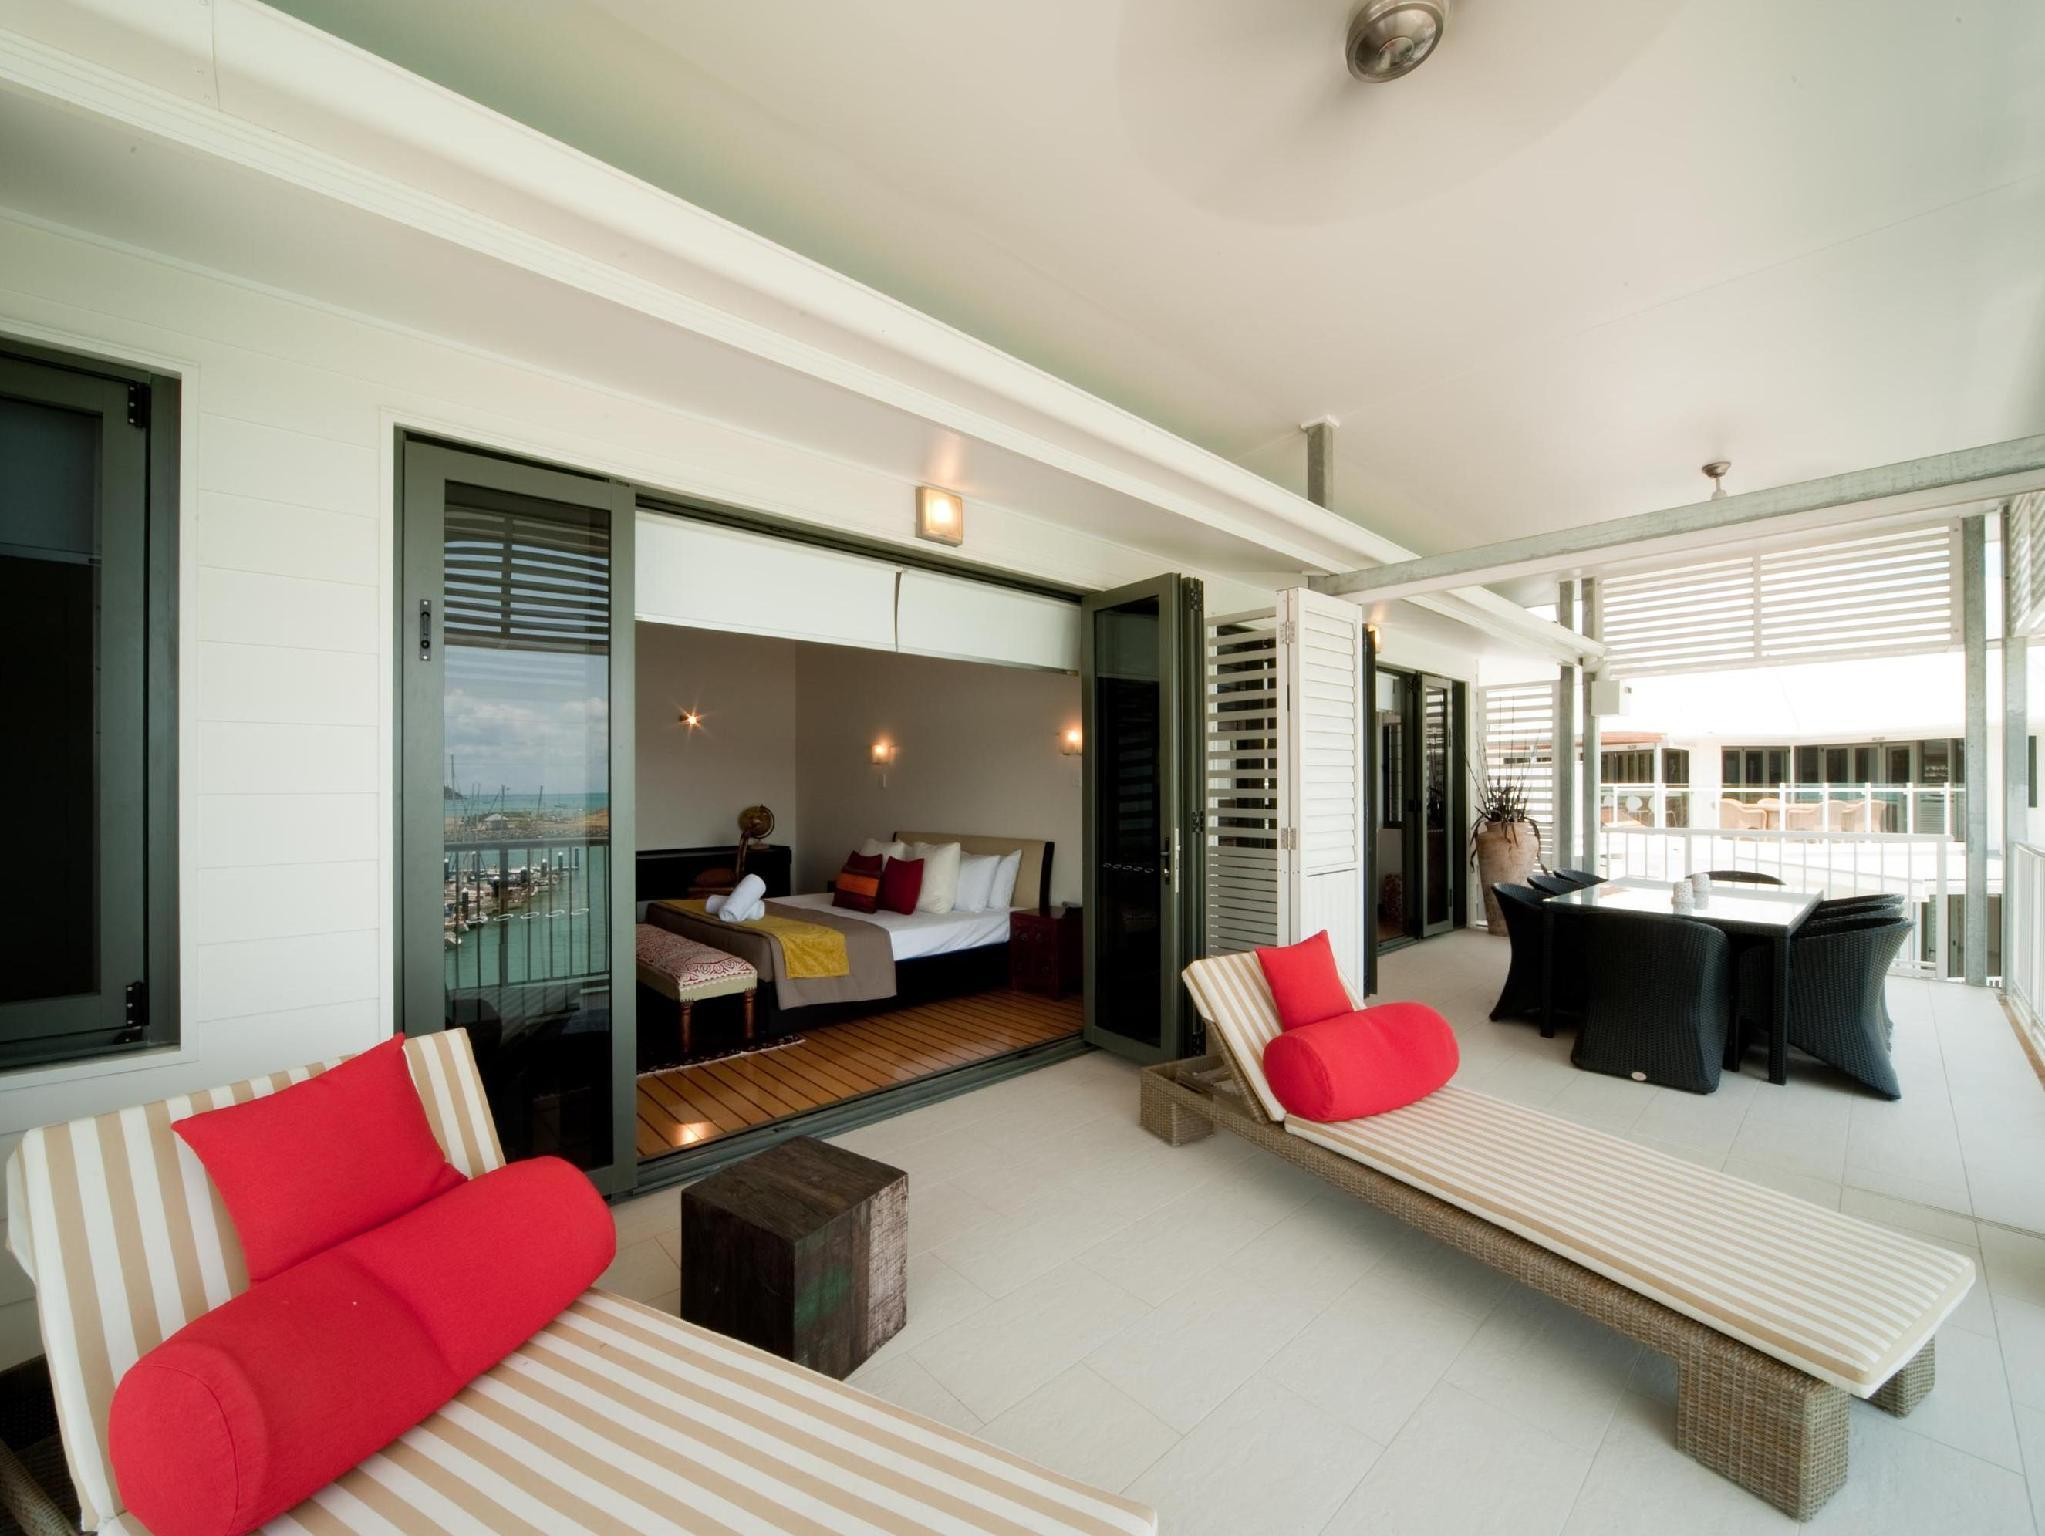 2 Bedroom Apartment   Guestroom Mantra Boathouse Apartments